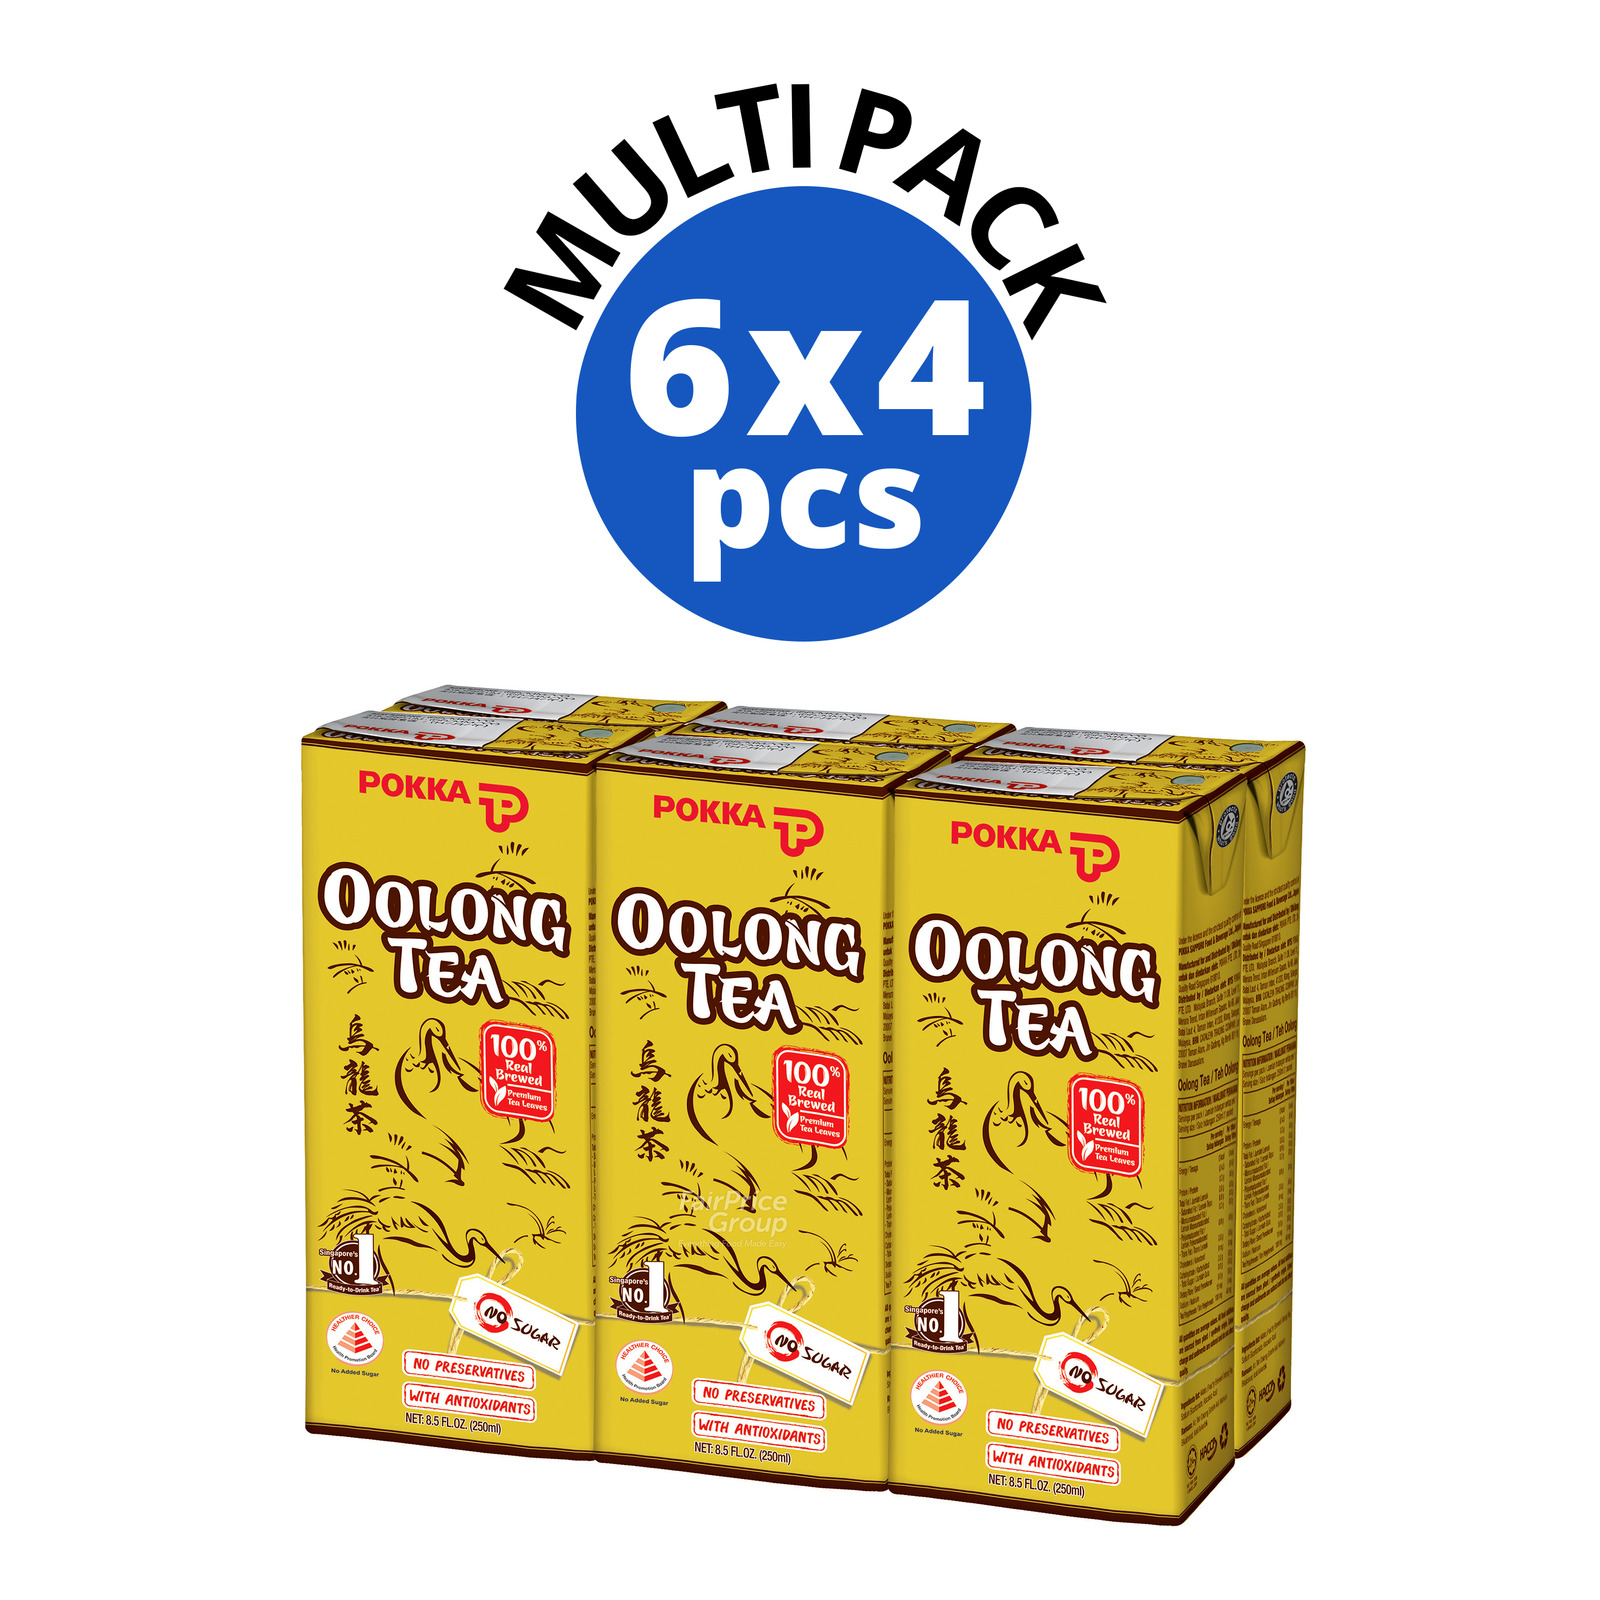 Pokka Packet Drink - Oolong Tea (No Sugar Added)